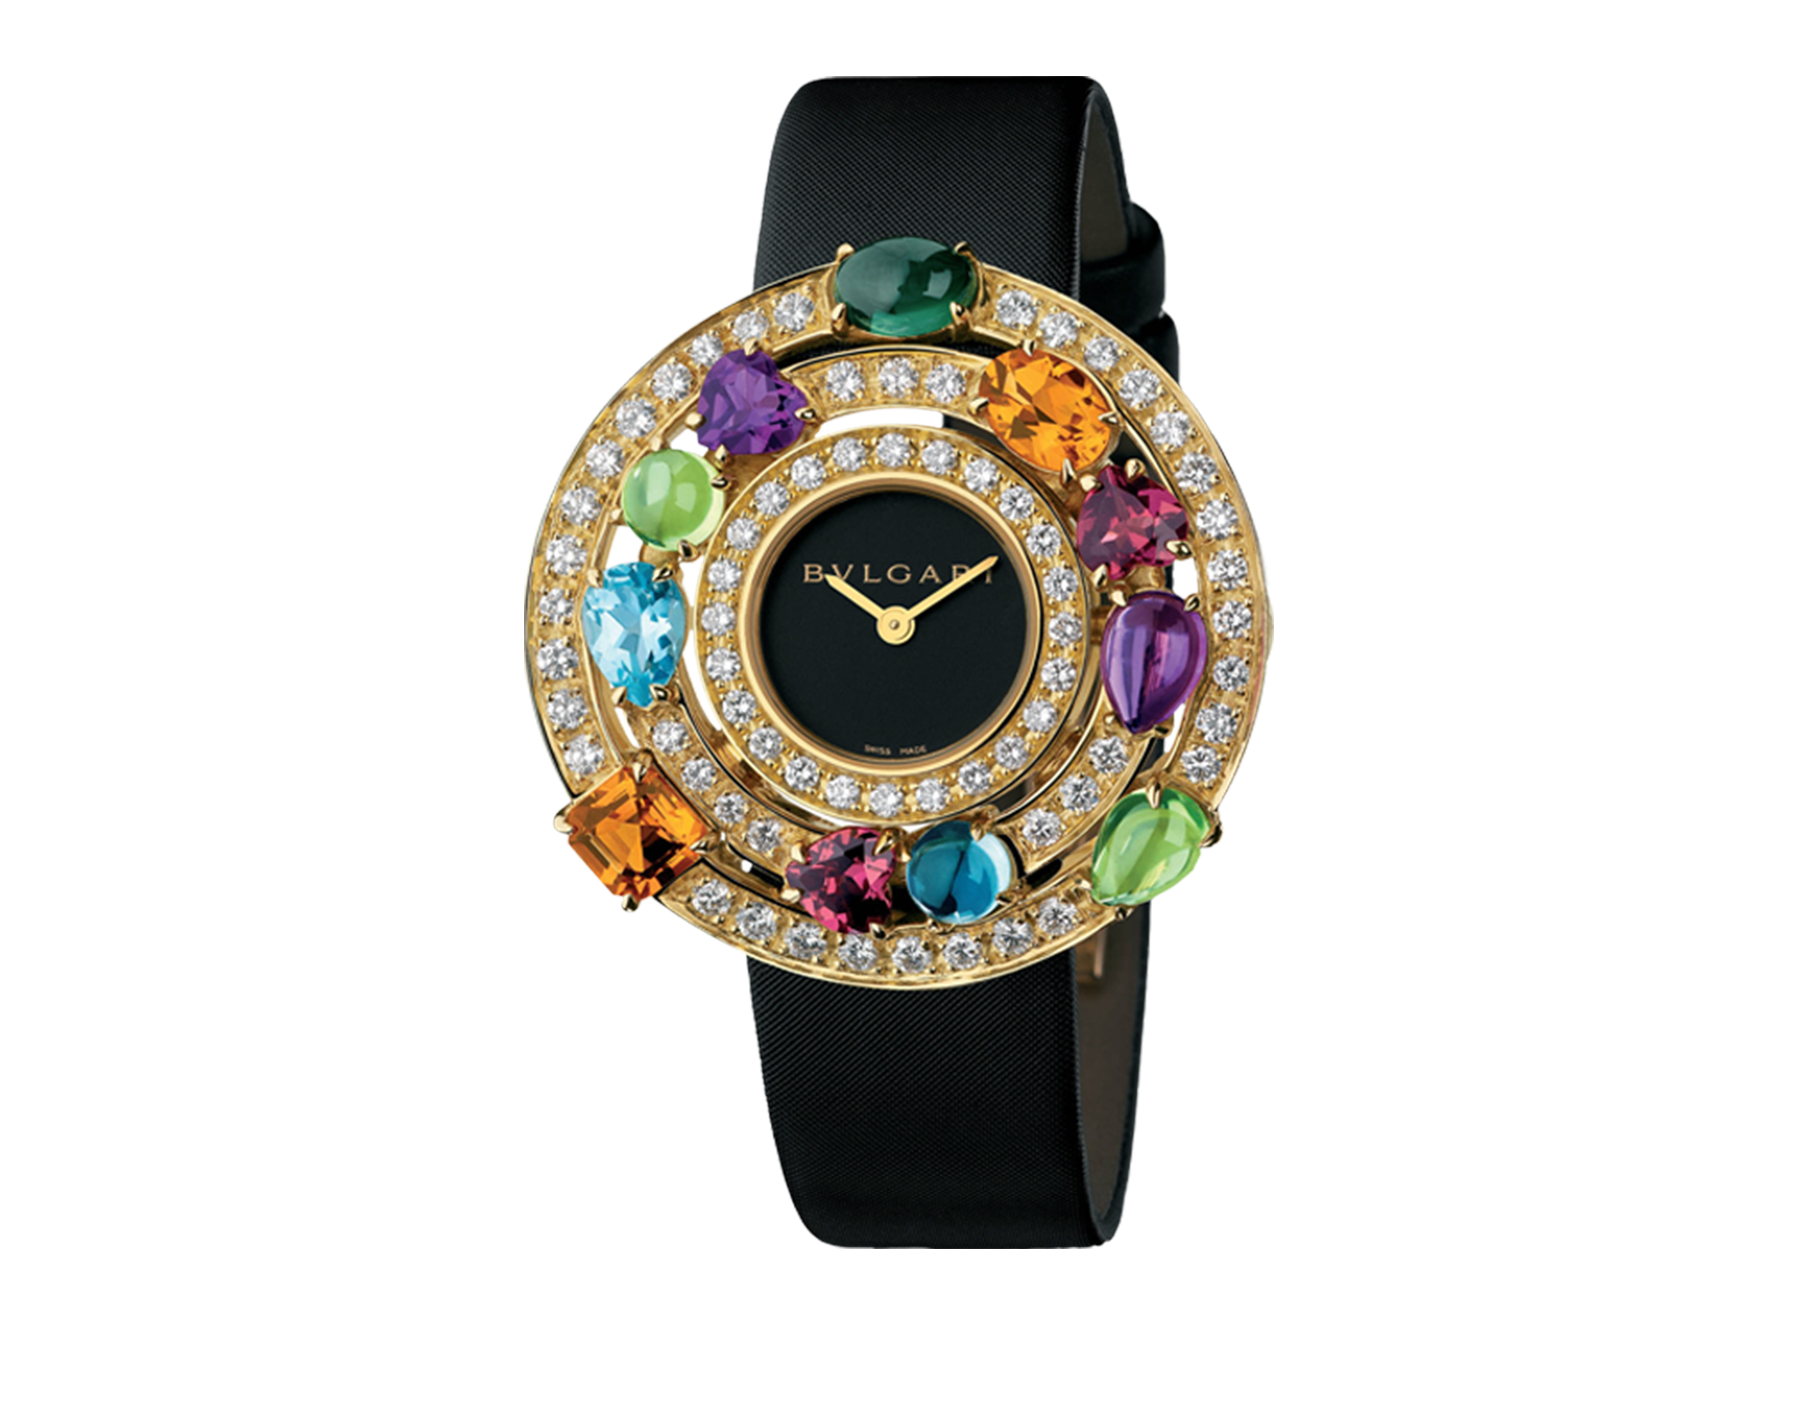 Astrale watch with 18 kt yellow gold case set with brilliant-cut diamonds and fancy-cut coloured gemstones, black dial and satin bracelet 101339 image 1